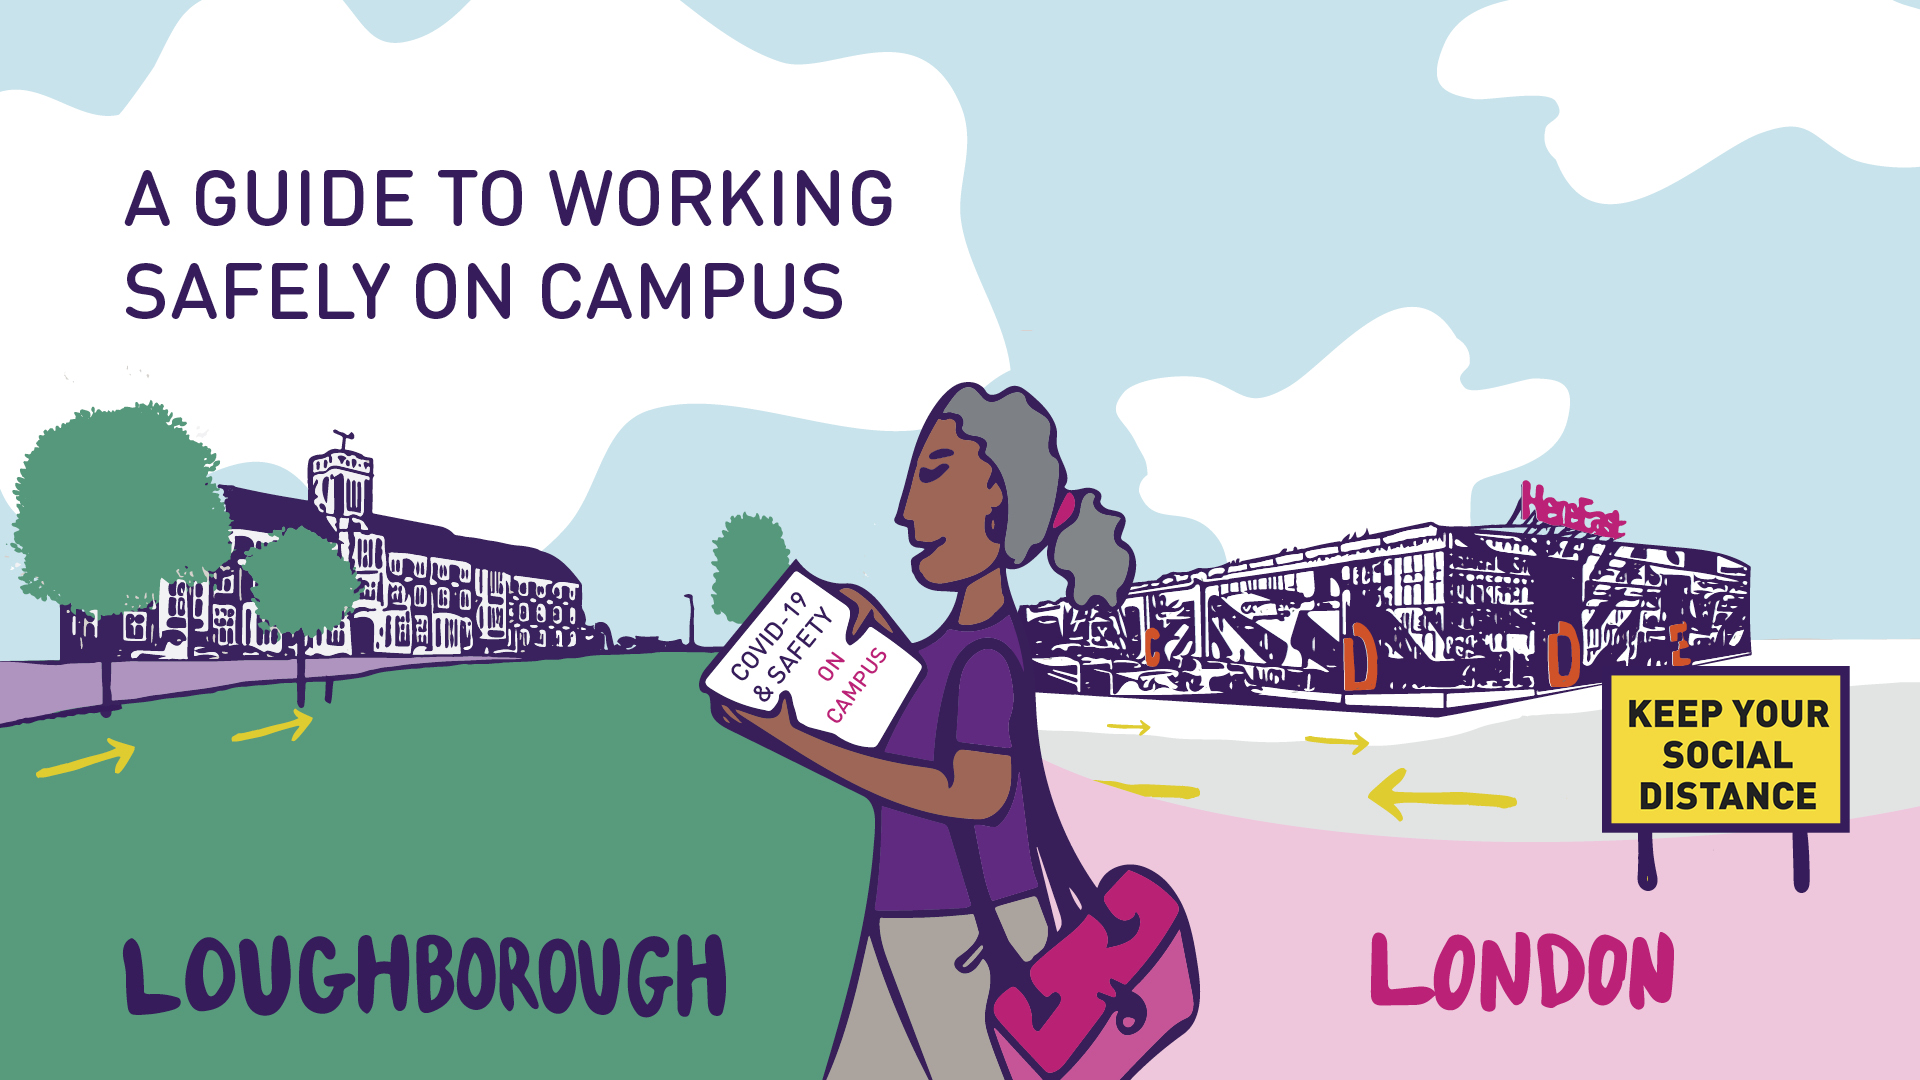 A guide to working safely on our campuses